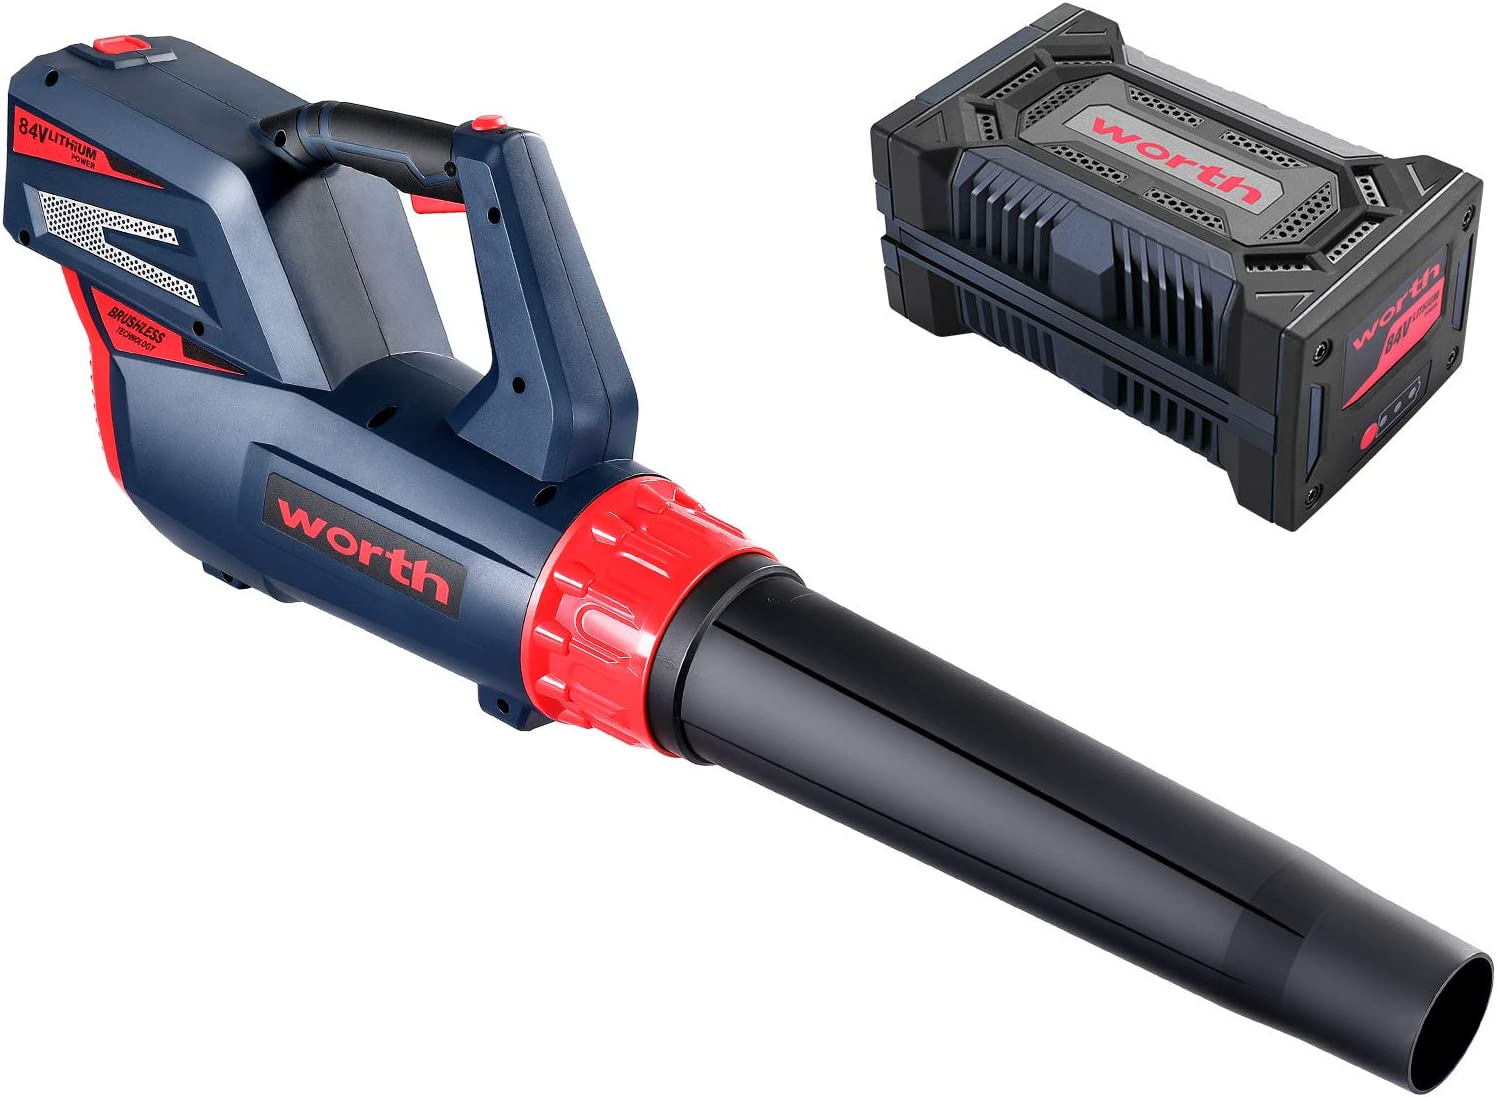 WORTH Cordless Max 49% OFF Virginia Beach Mall Leaf Blower - Lithium-ion 84v with Ba